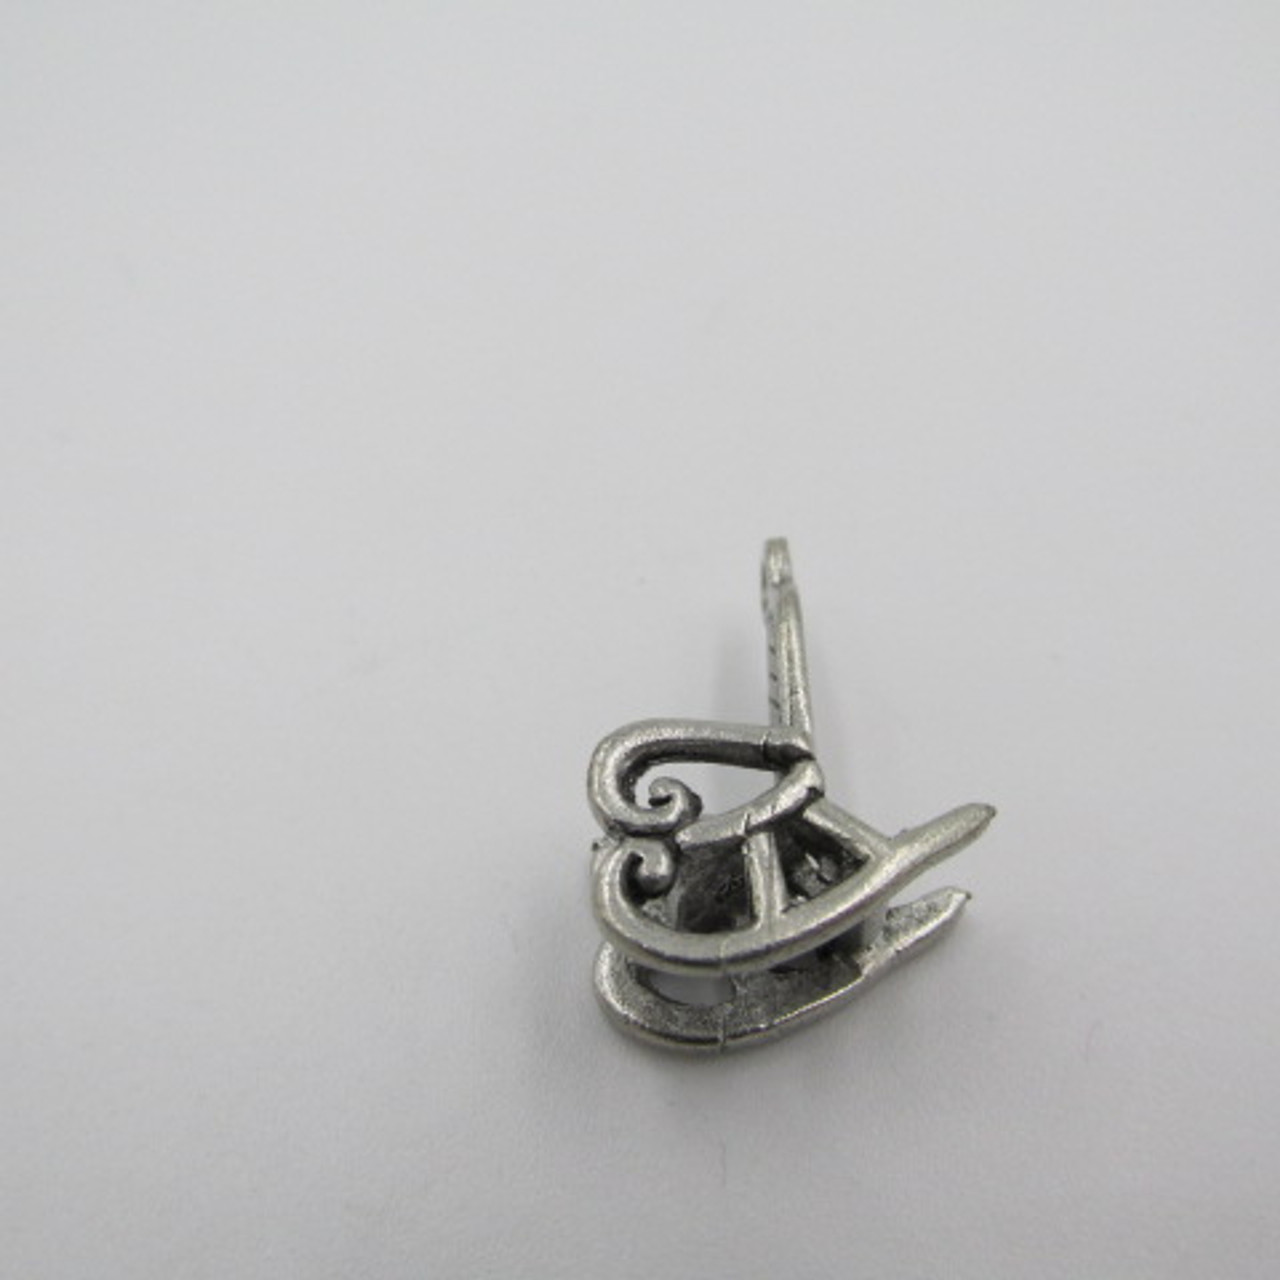 Rocking Chair Pewter Charm